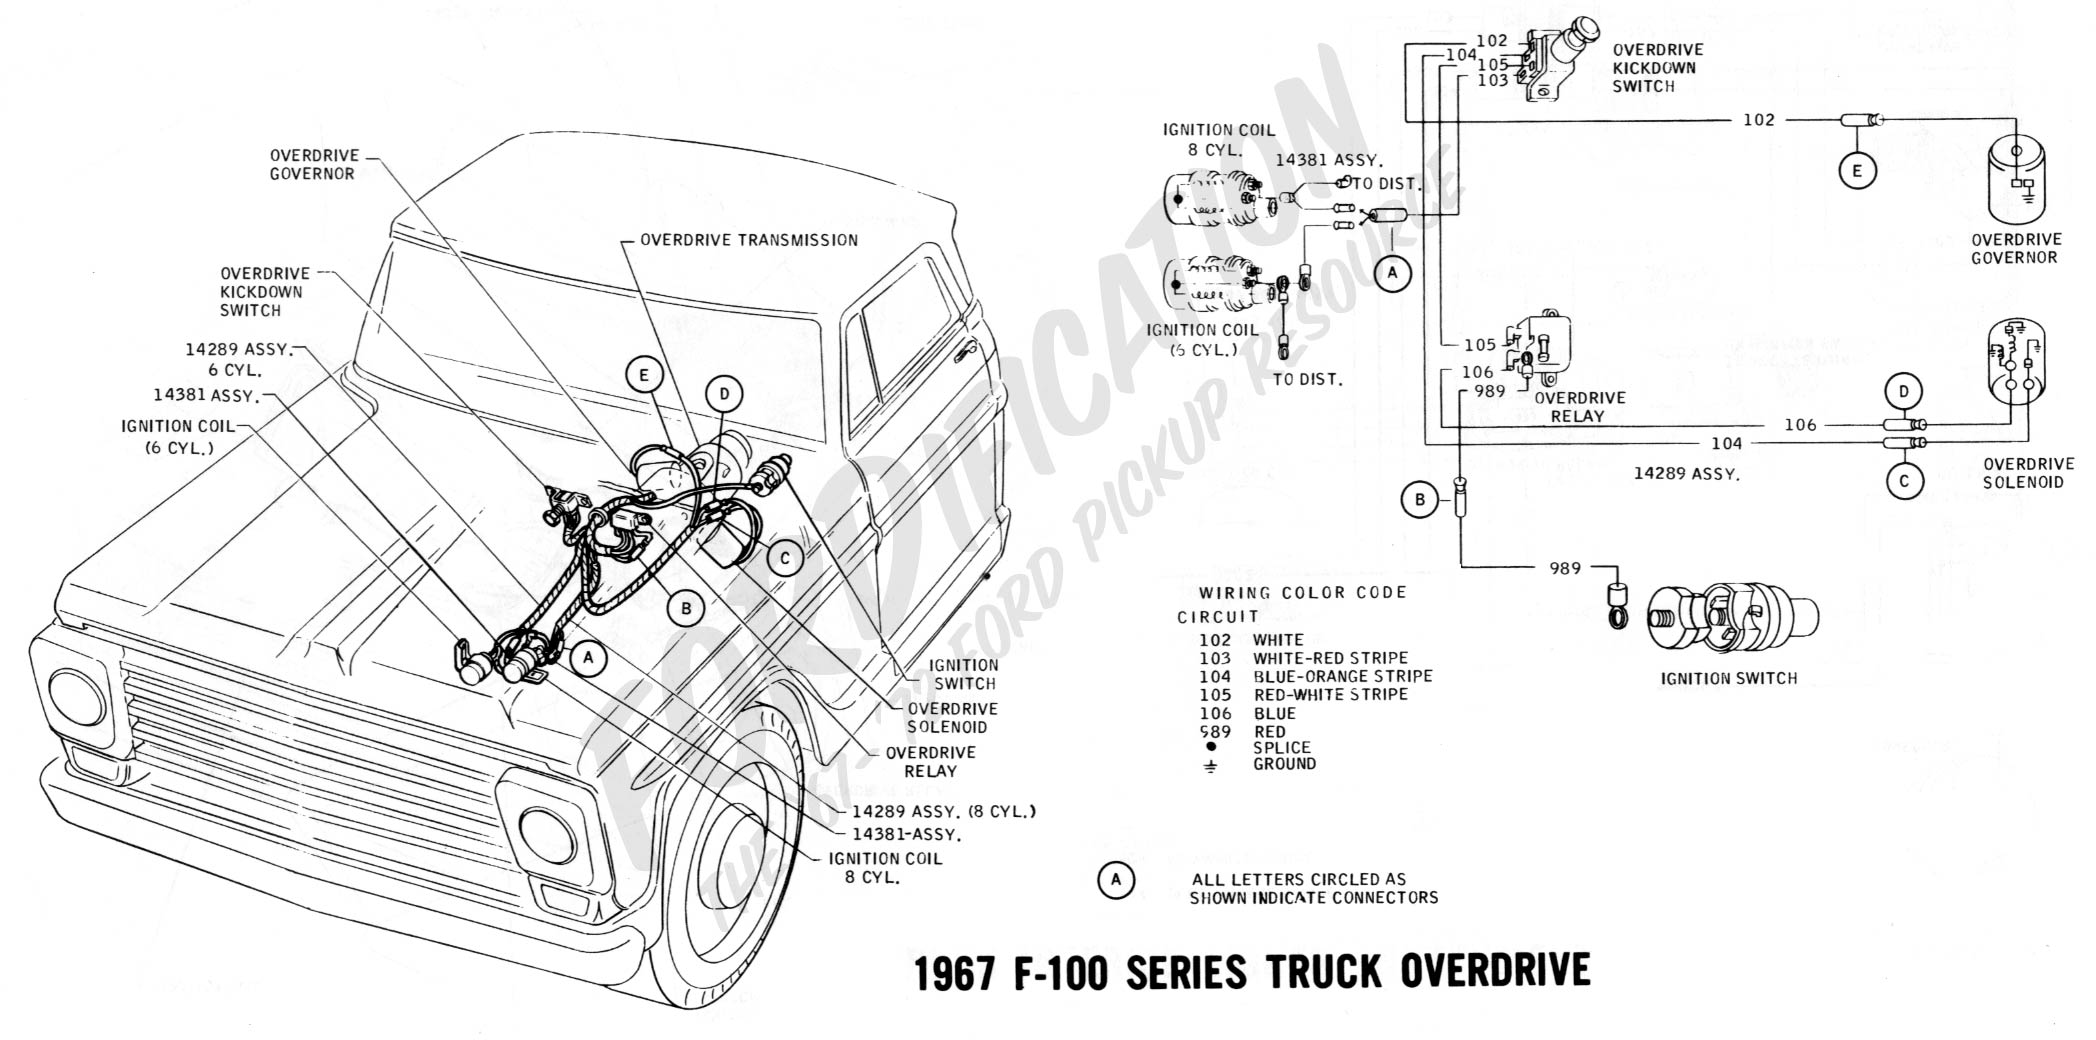 wiring 1967overdrive2 ford truck technical drawings and schematics section h wiring 1966 ford truck wiring diagram at aneh.co